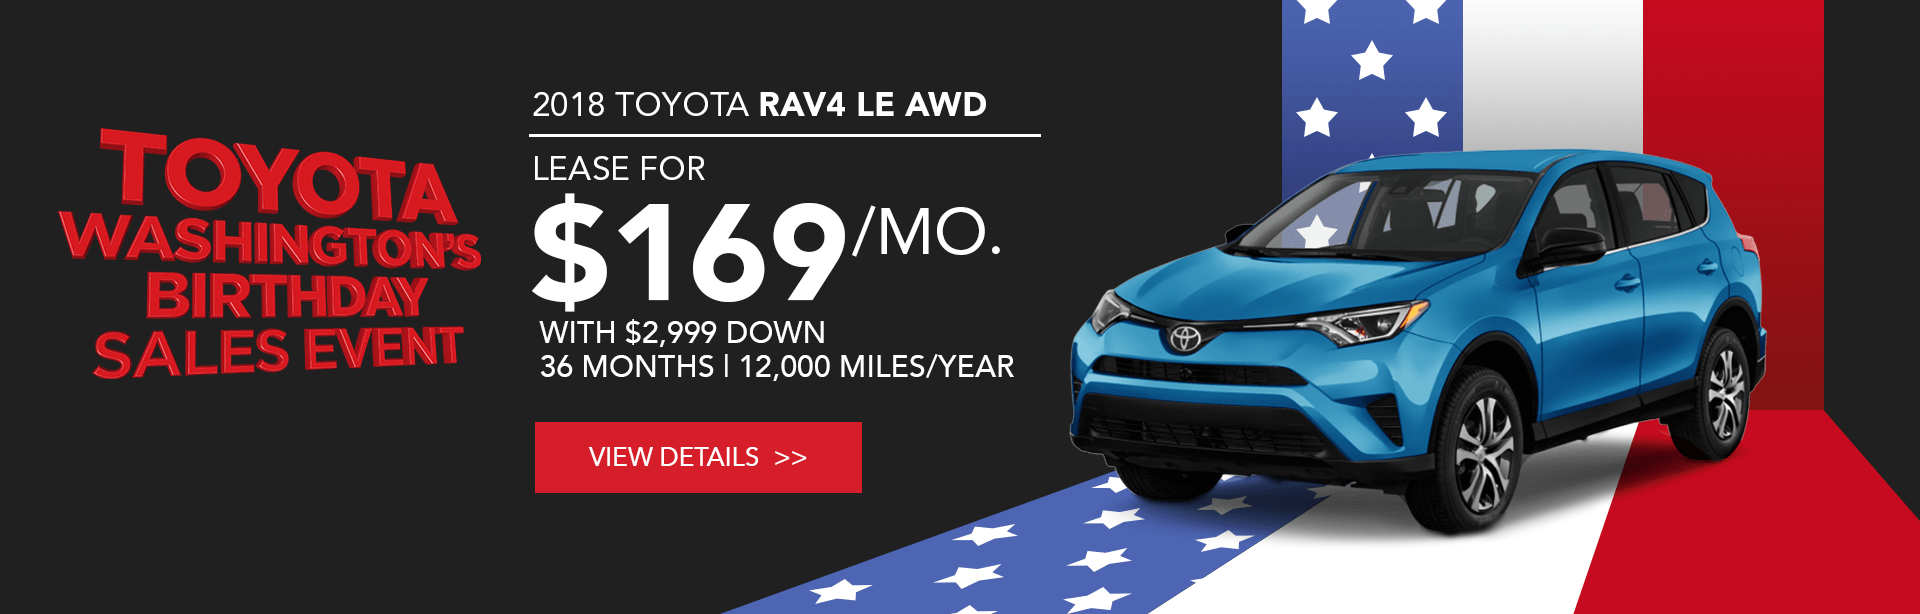 Toyota RAV4 Special Offer